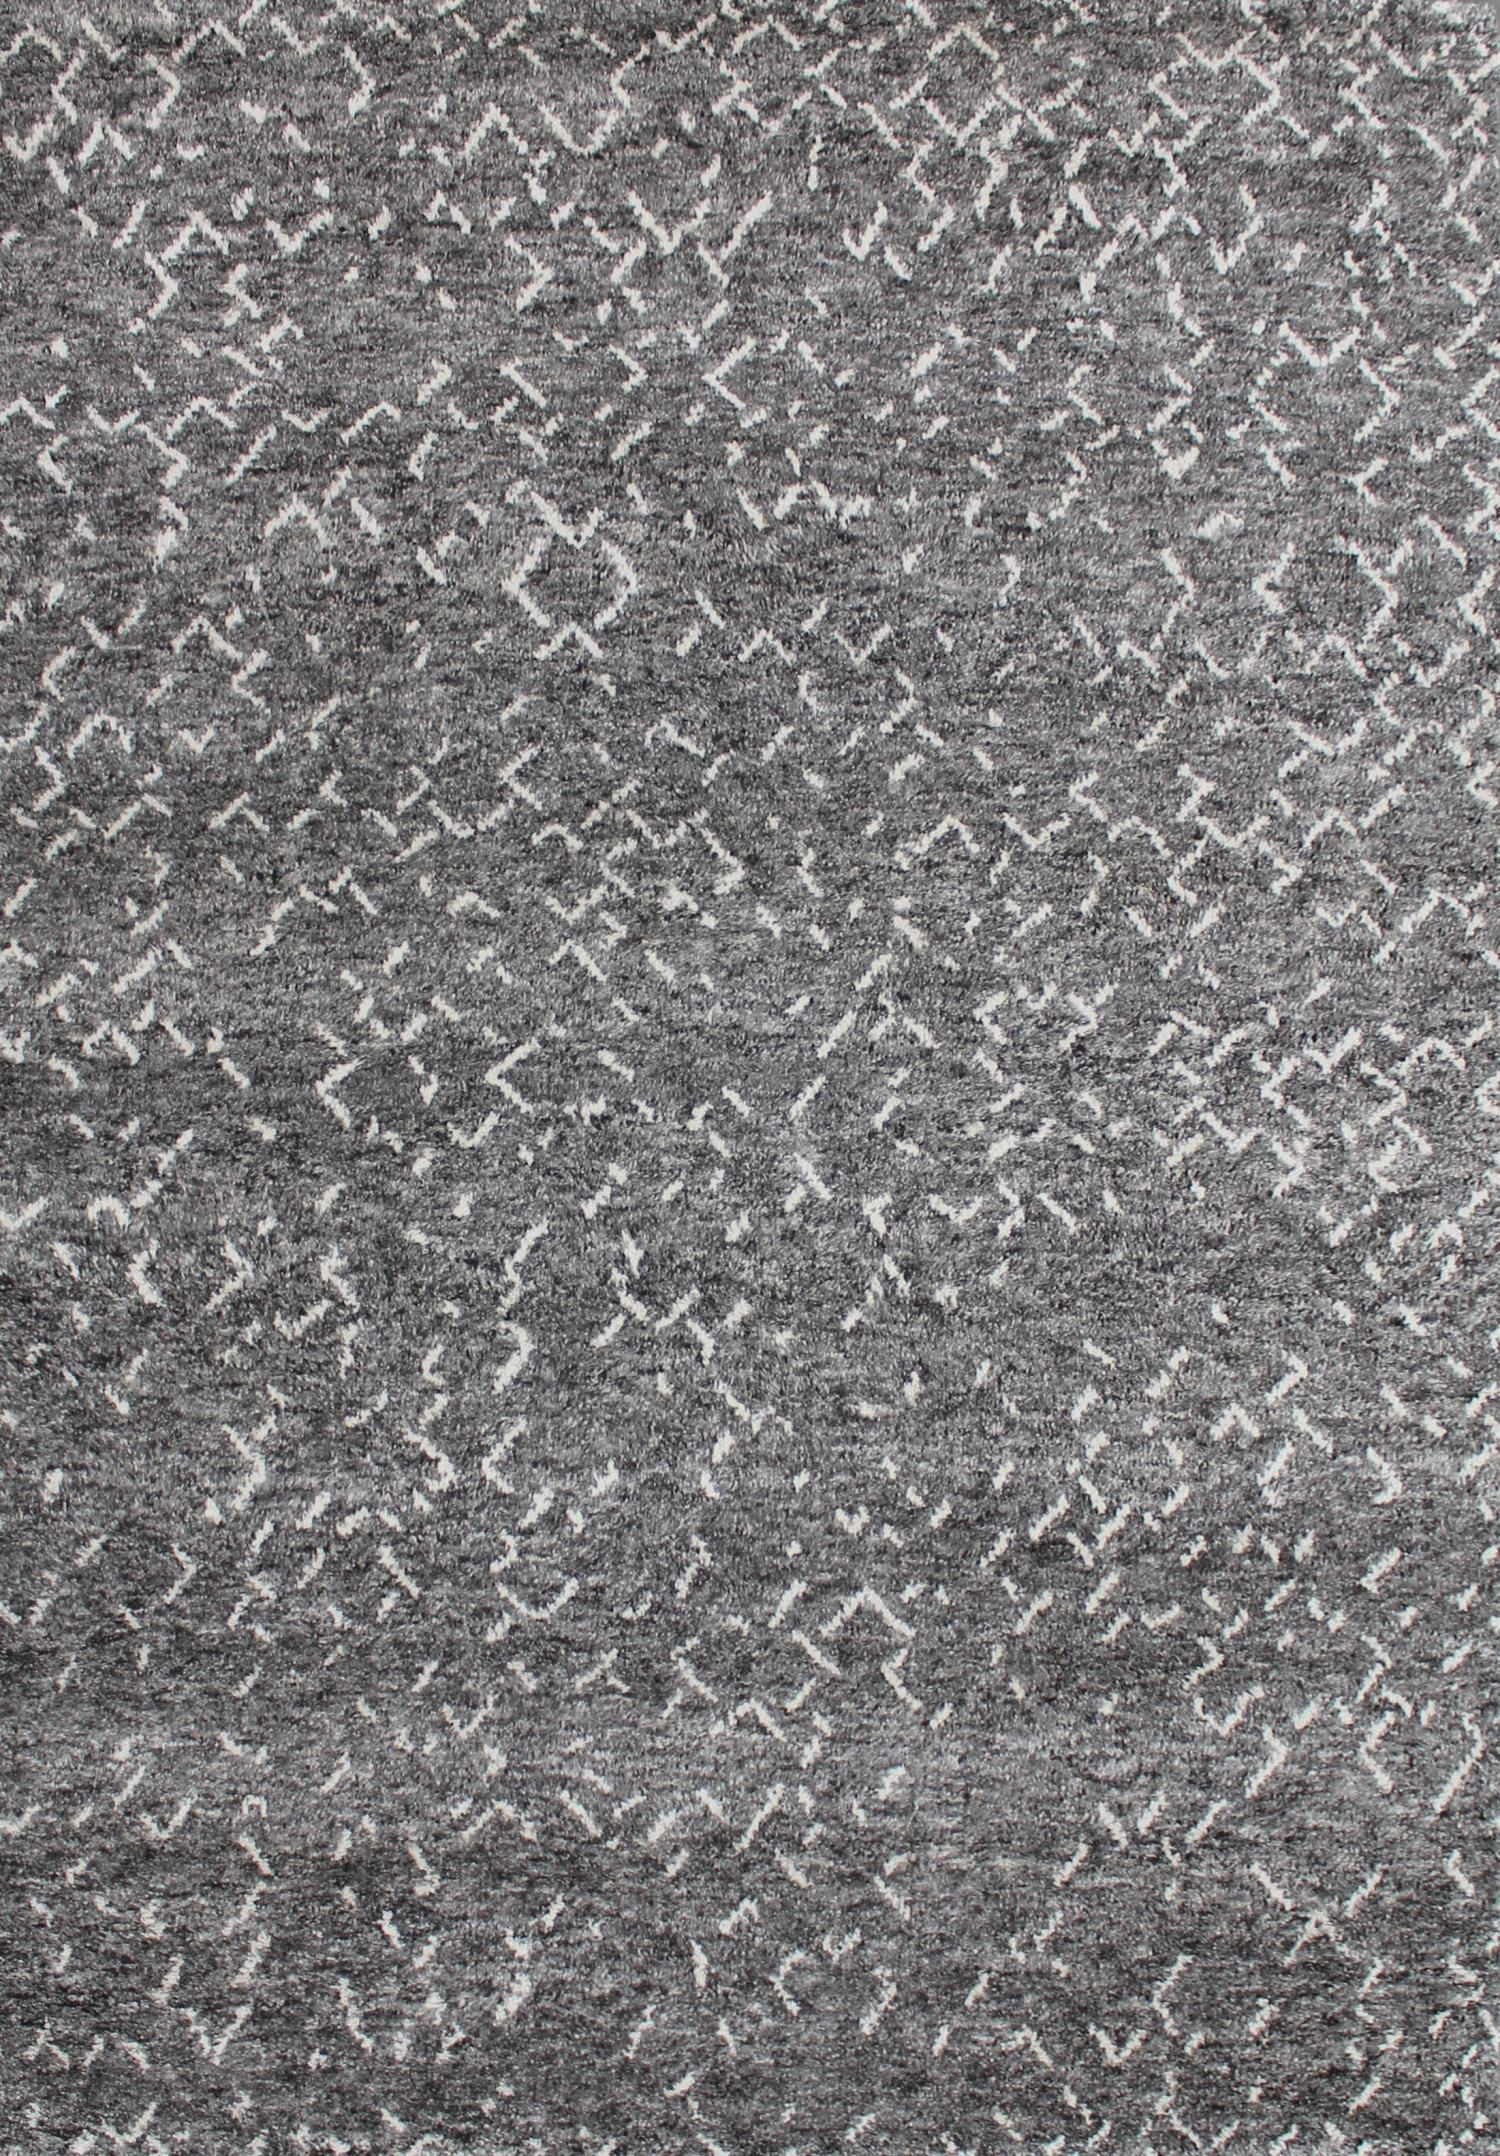 jasmin-grey-hand-knotted-pure-wool-rugs-perth